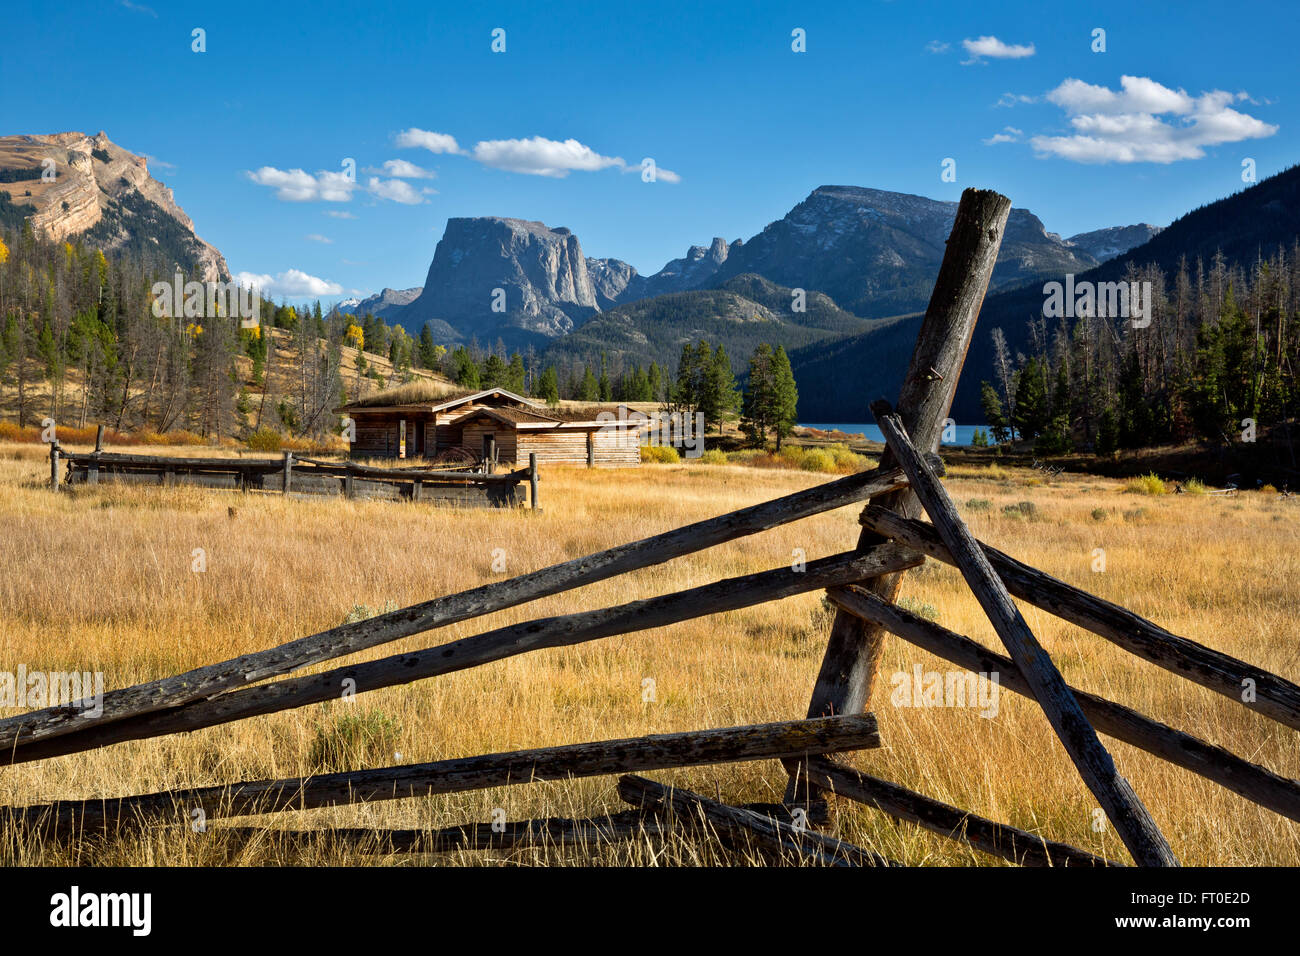 THE OLD MILL LOG CABINS - Updated 2020 Prices, Hotel ...  Old Log Cabins Wyoming